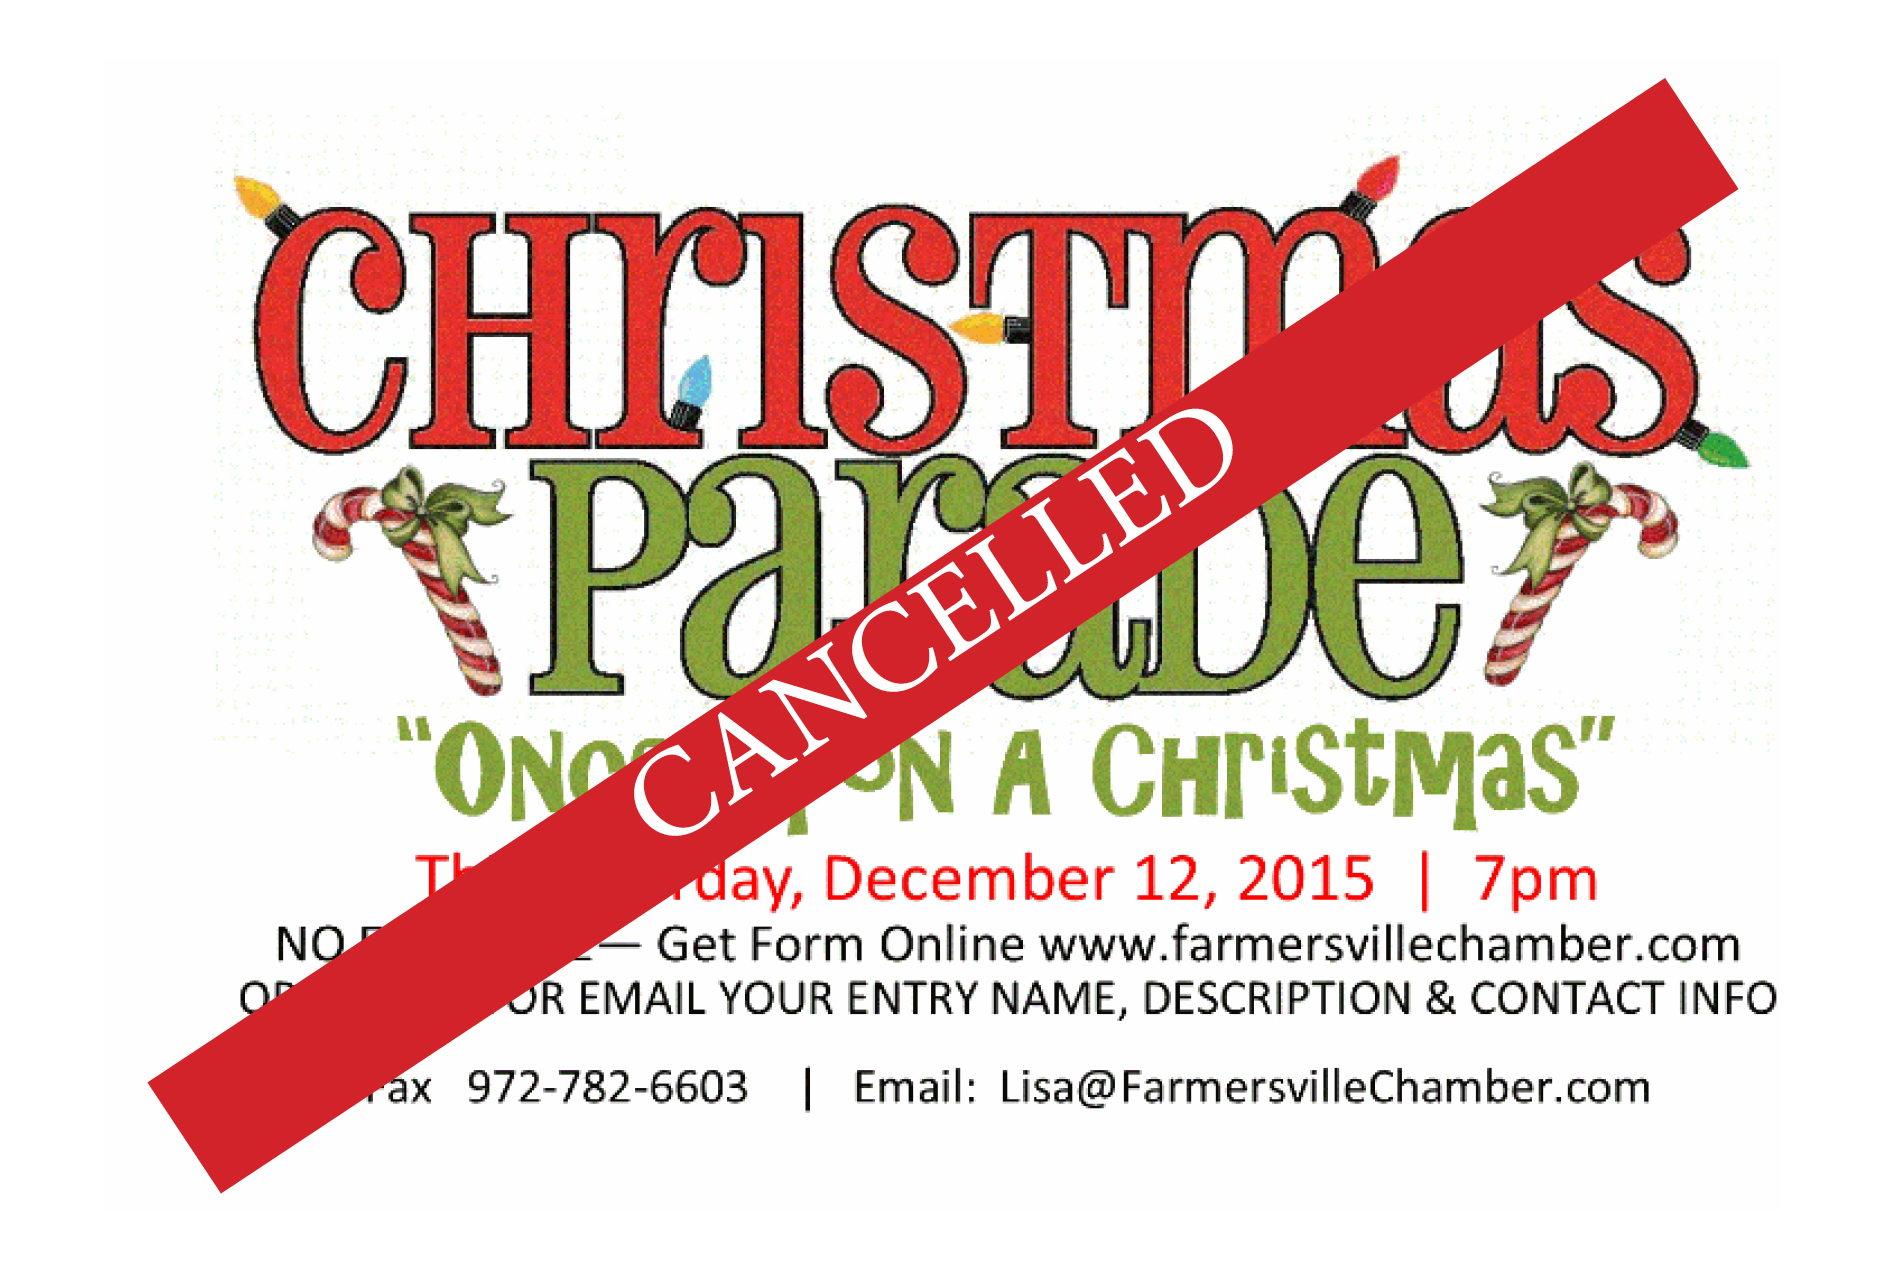 Christmas parade cancelled for this Saturday